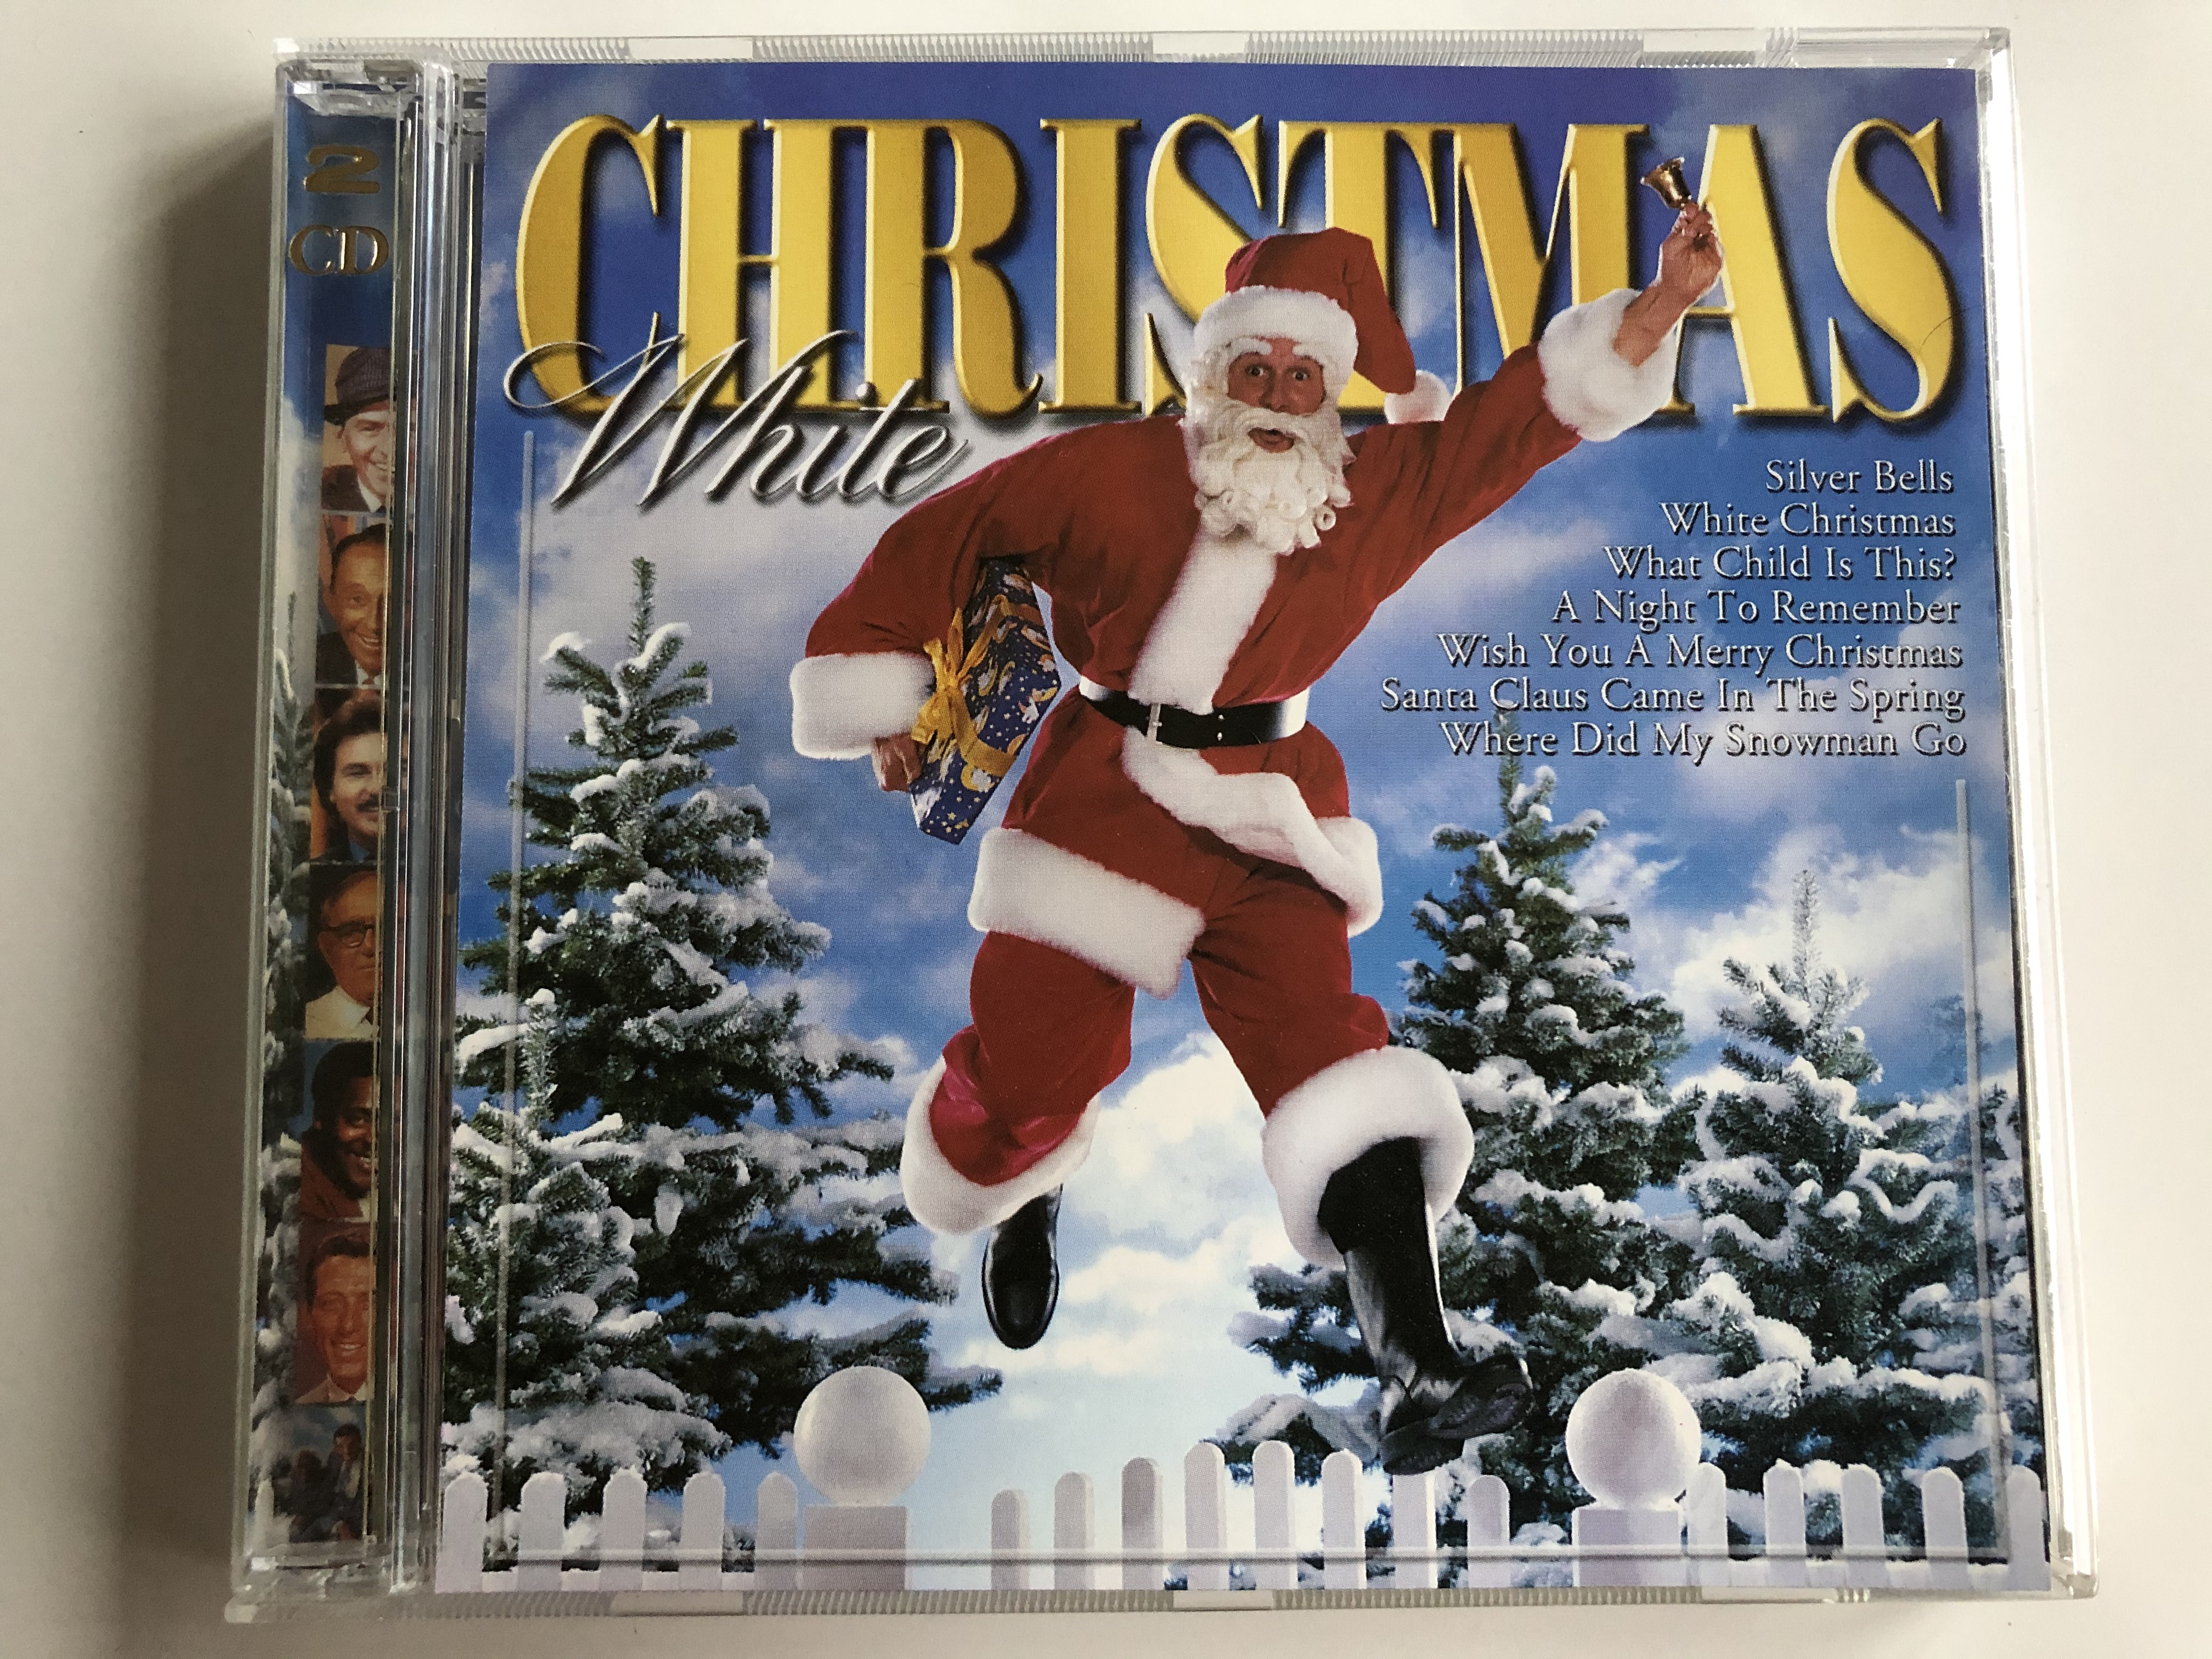 christmas-white-silver-bells-white-christmas-what-child-is-this-a-night-to-remember-wish-you-a-merry-christmas-santa-claus-came-in-the-spring-where-did-my-snowman-go-euro-trend-2x-audio-cd-1-.jpg